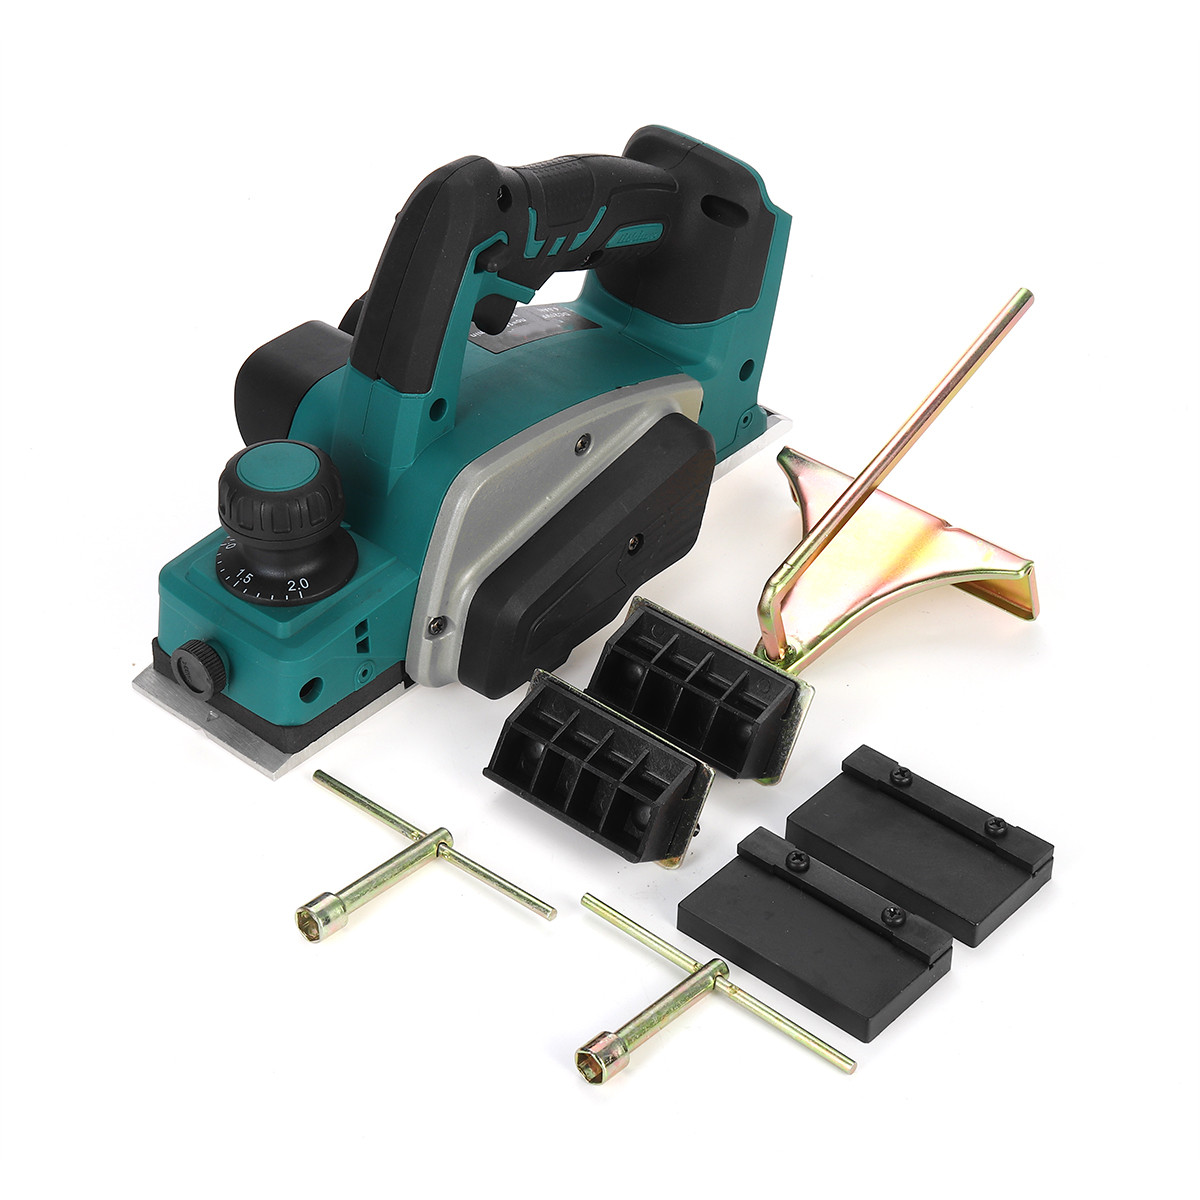 For 18V Makita With Tool Wood Planer Cutting 15000rpm Tool 18V Rechargeable Handheld Cordless Battery Electric Wrench Drillpro